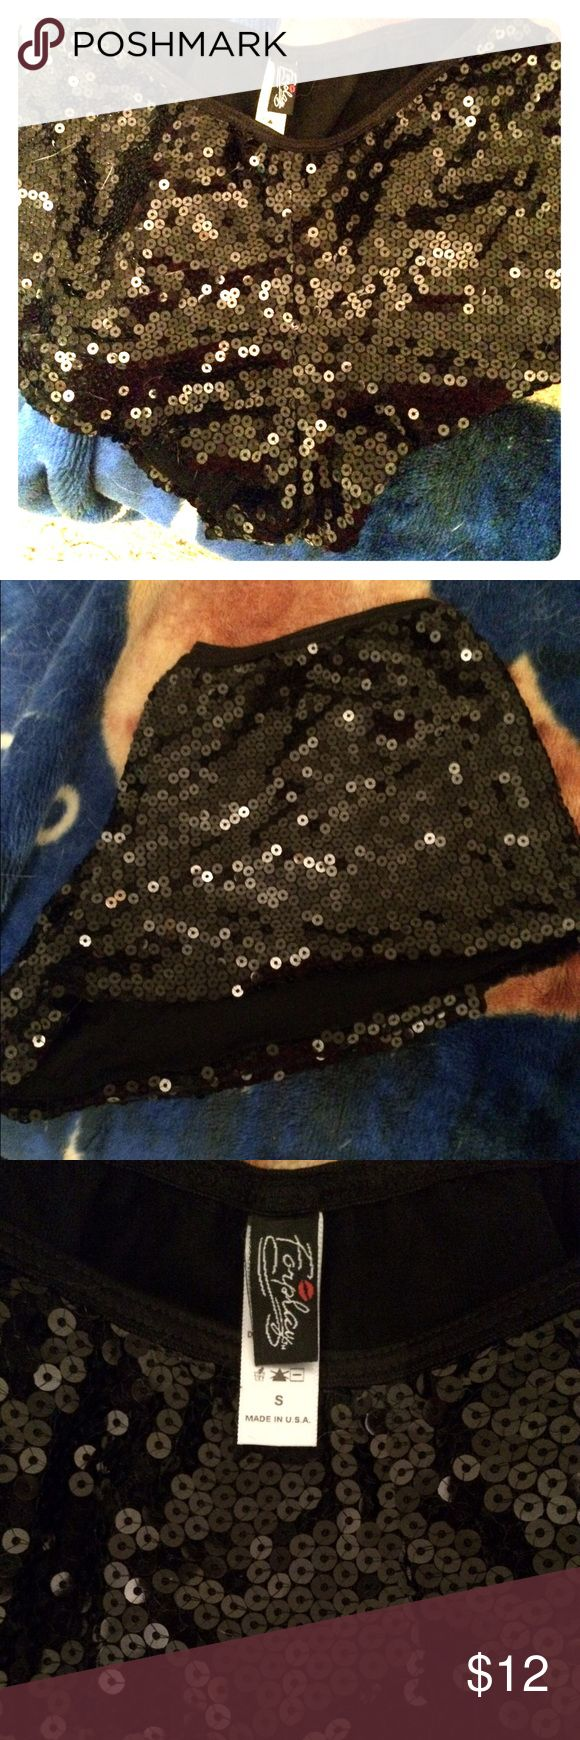 ✂️last csll✂️💎🆕️NWOT Foreplay Sparkle Tap shorts Sexy Shiny tap shorts for dance or exercise, pretty beading, 🆕NWOT never worn ( perfect for pole dancing which is great exercise) Foreplay Shorts